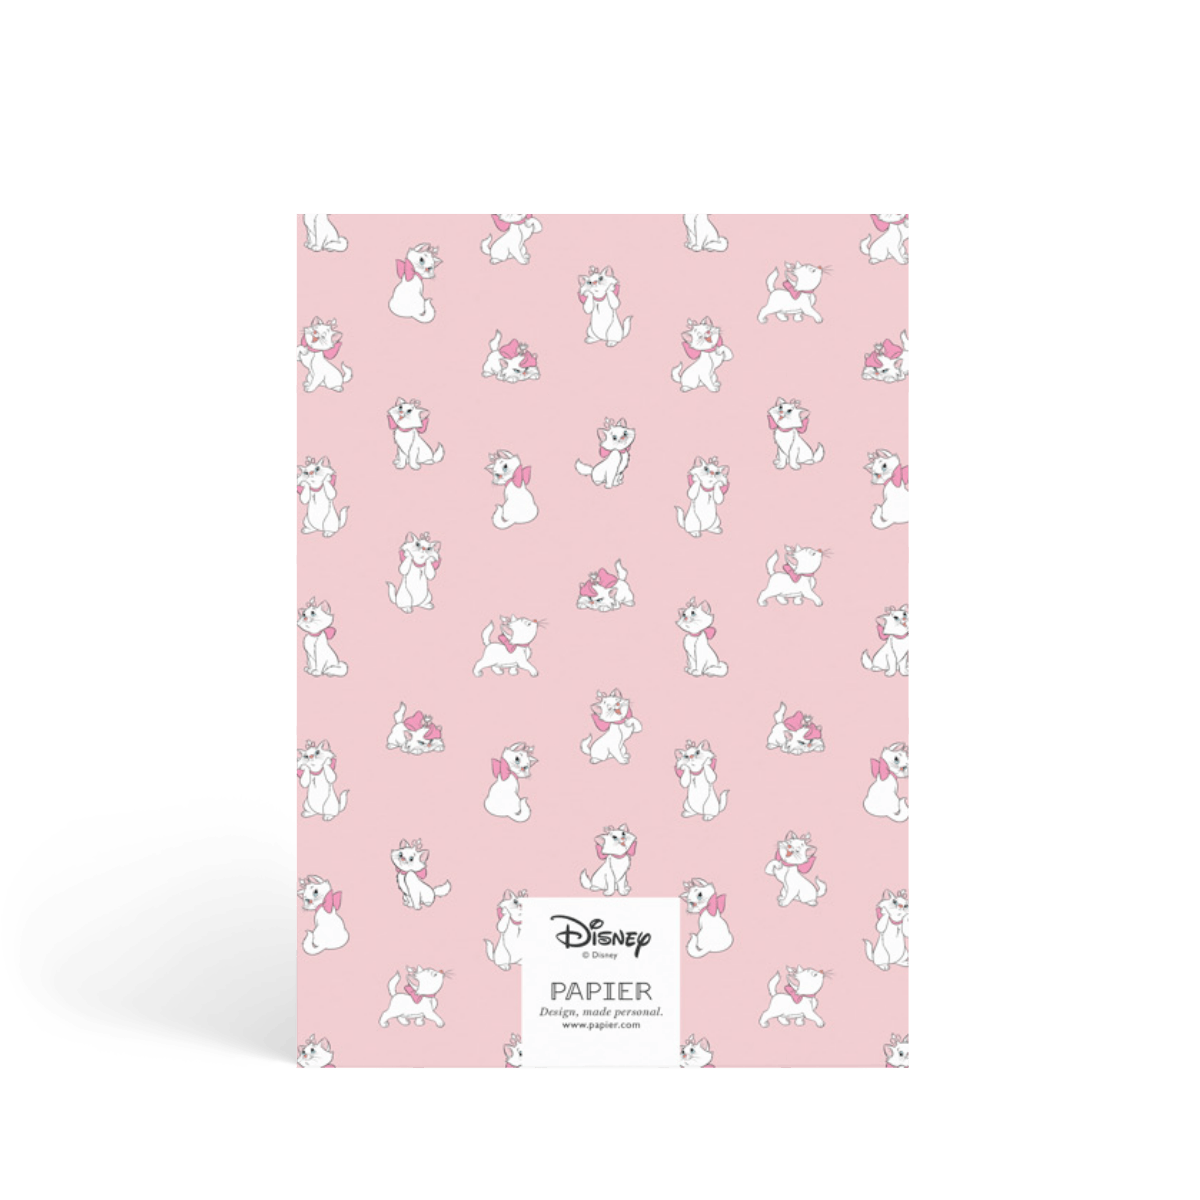 Https%3a%2f%2fwww.papier.com%2fproduct image%2f51313%2f5%2fmarie aristocats 12567 rueckseite 1540477311.png?ixlib=rb 1.1